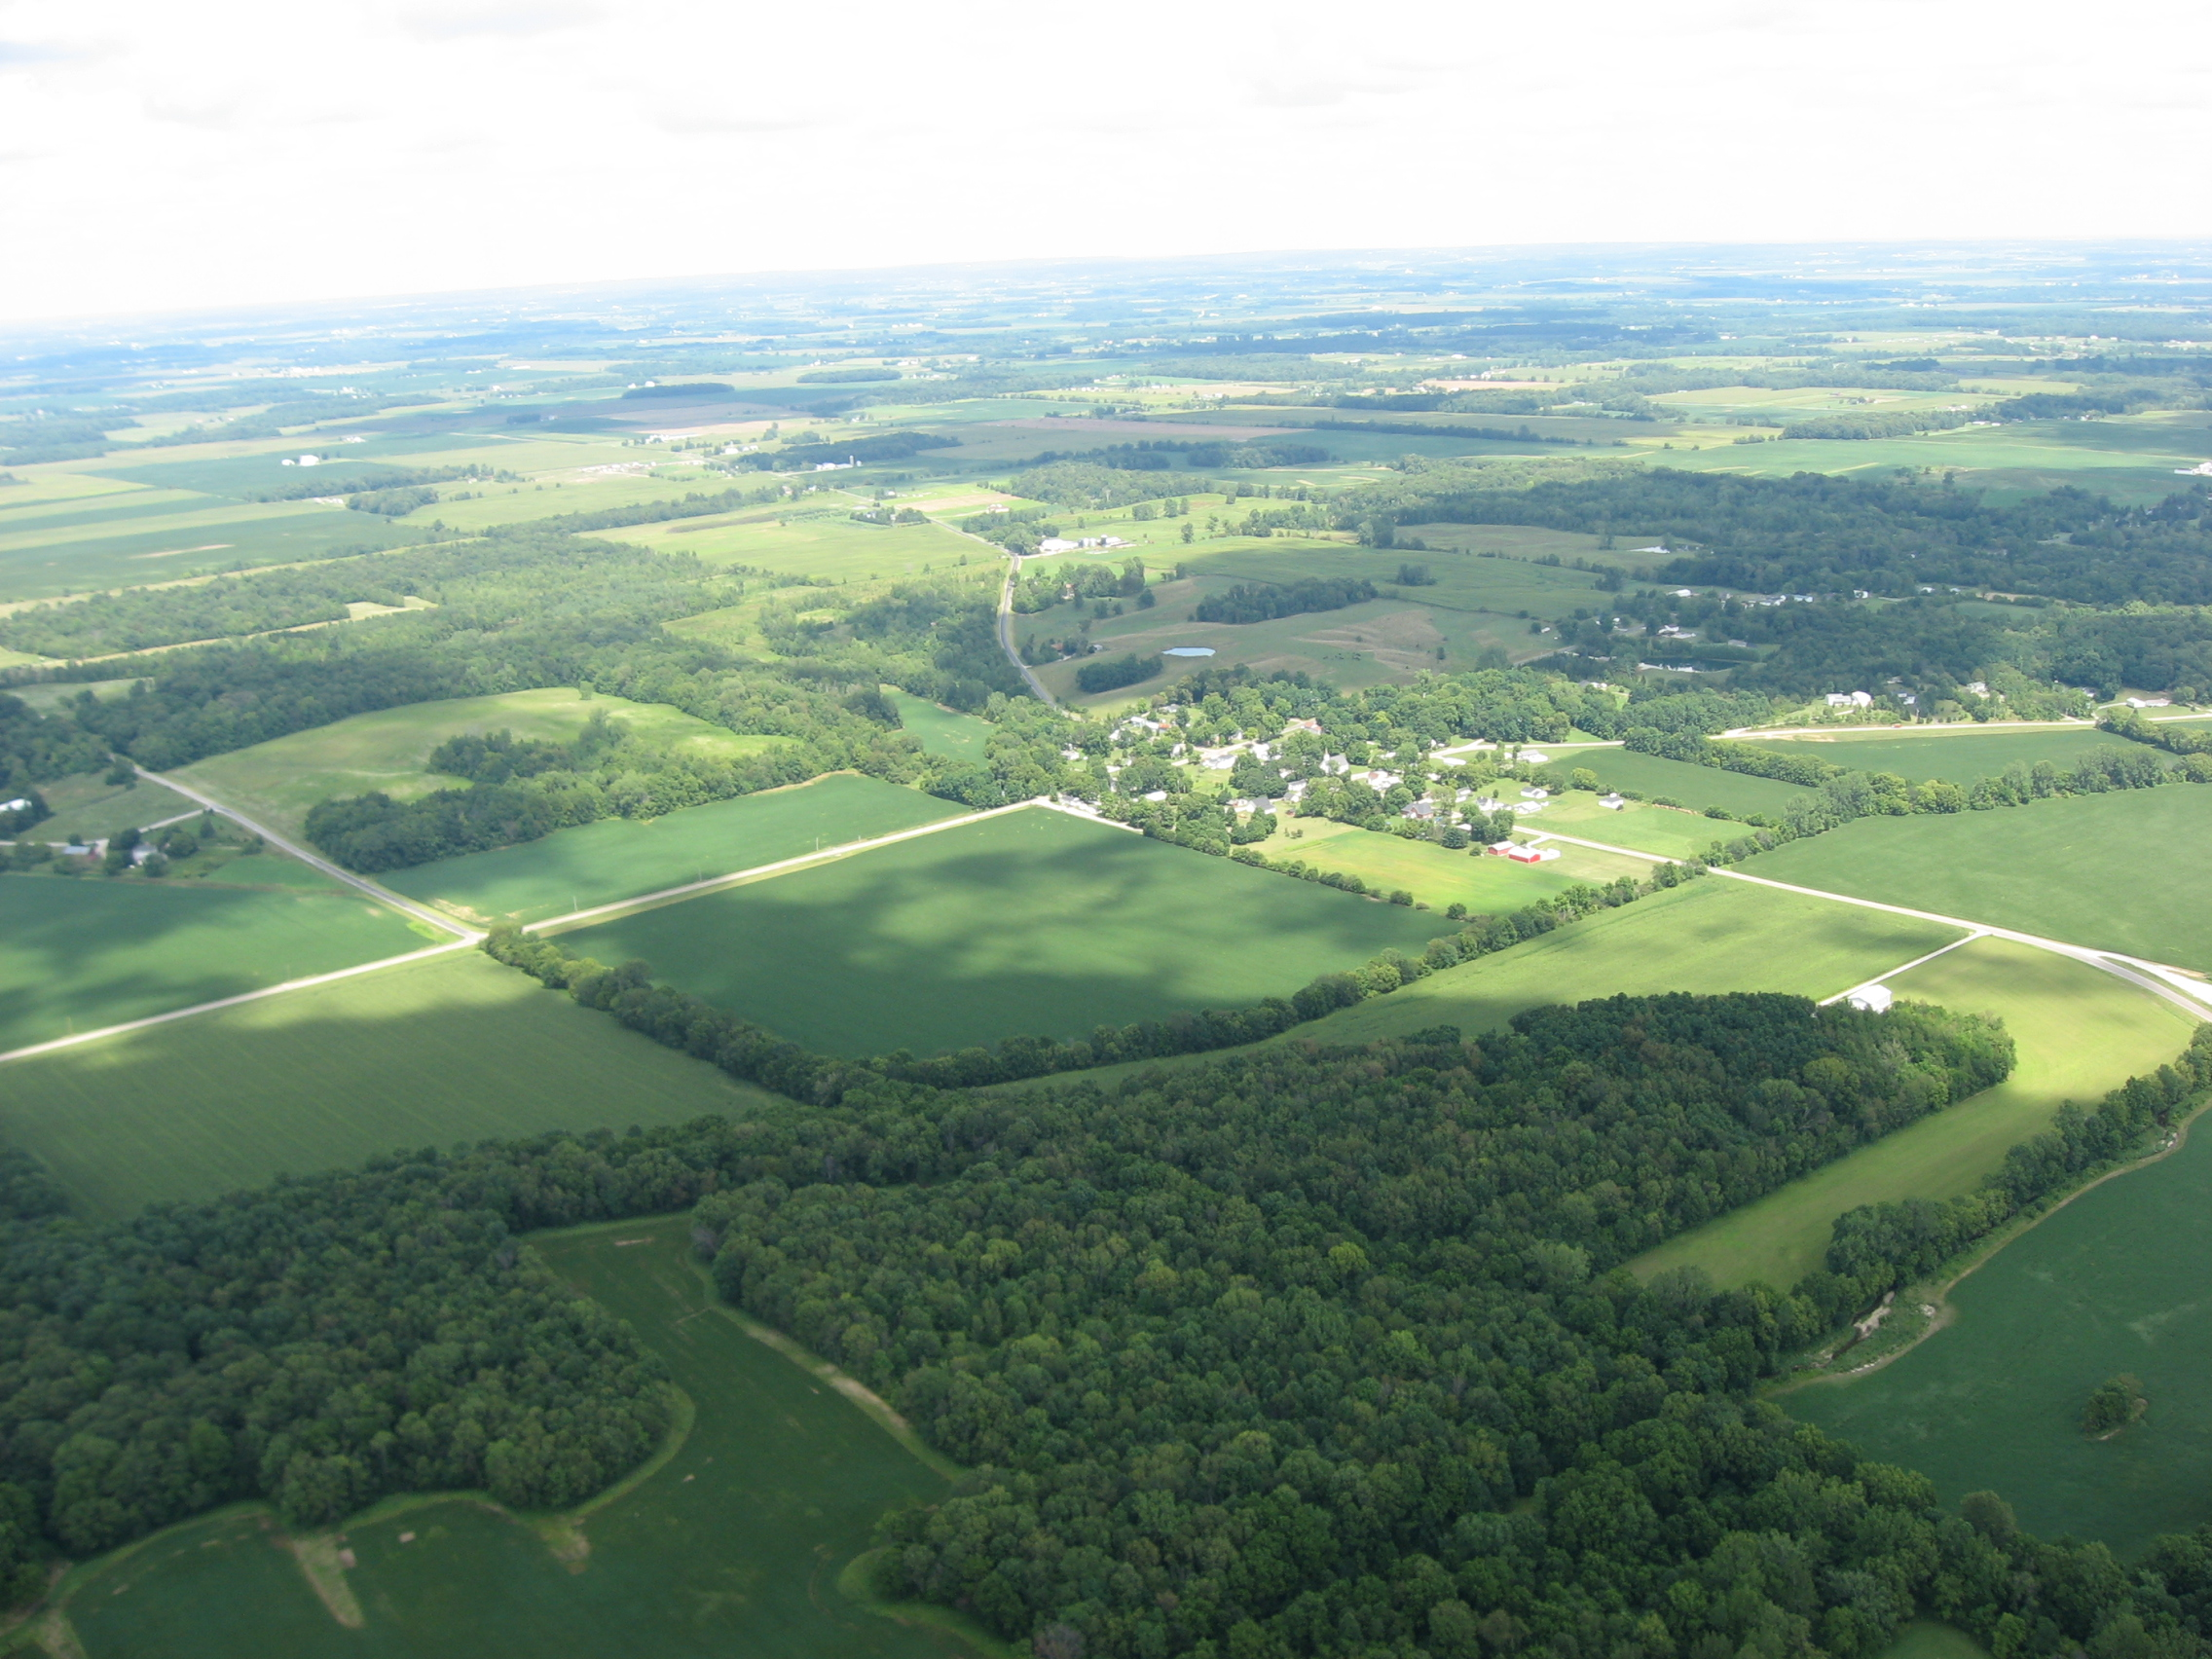 File:Millerstown aerial view.jpg - Wikimedia Commons